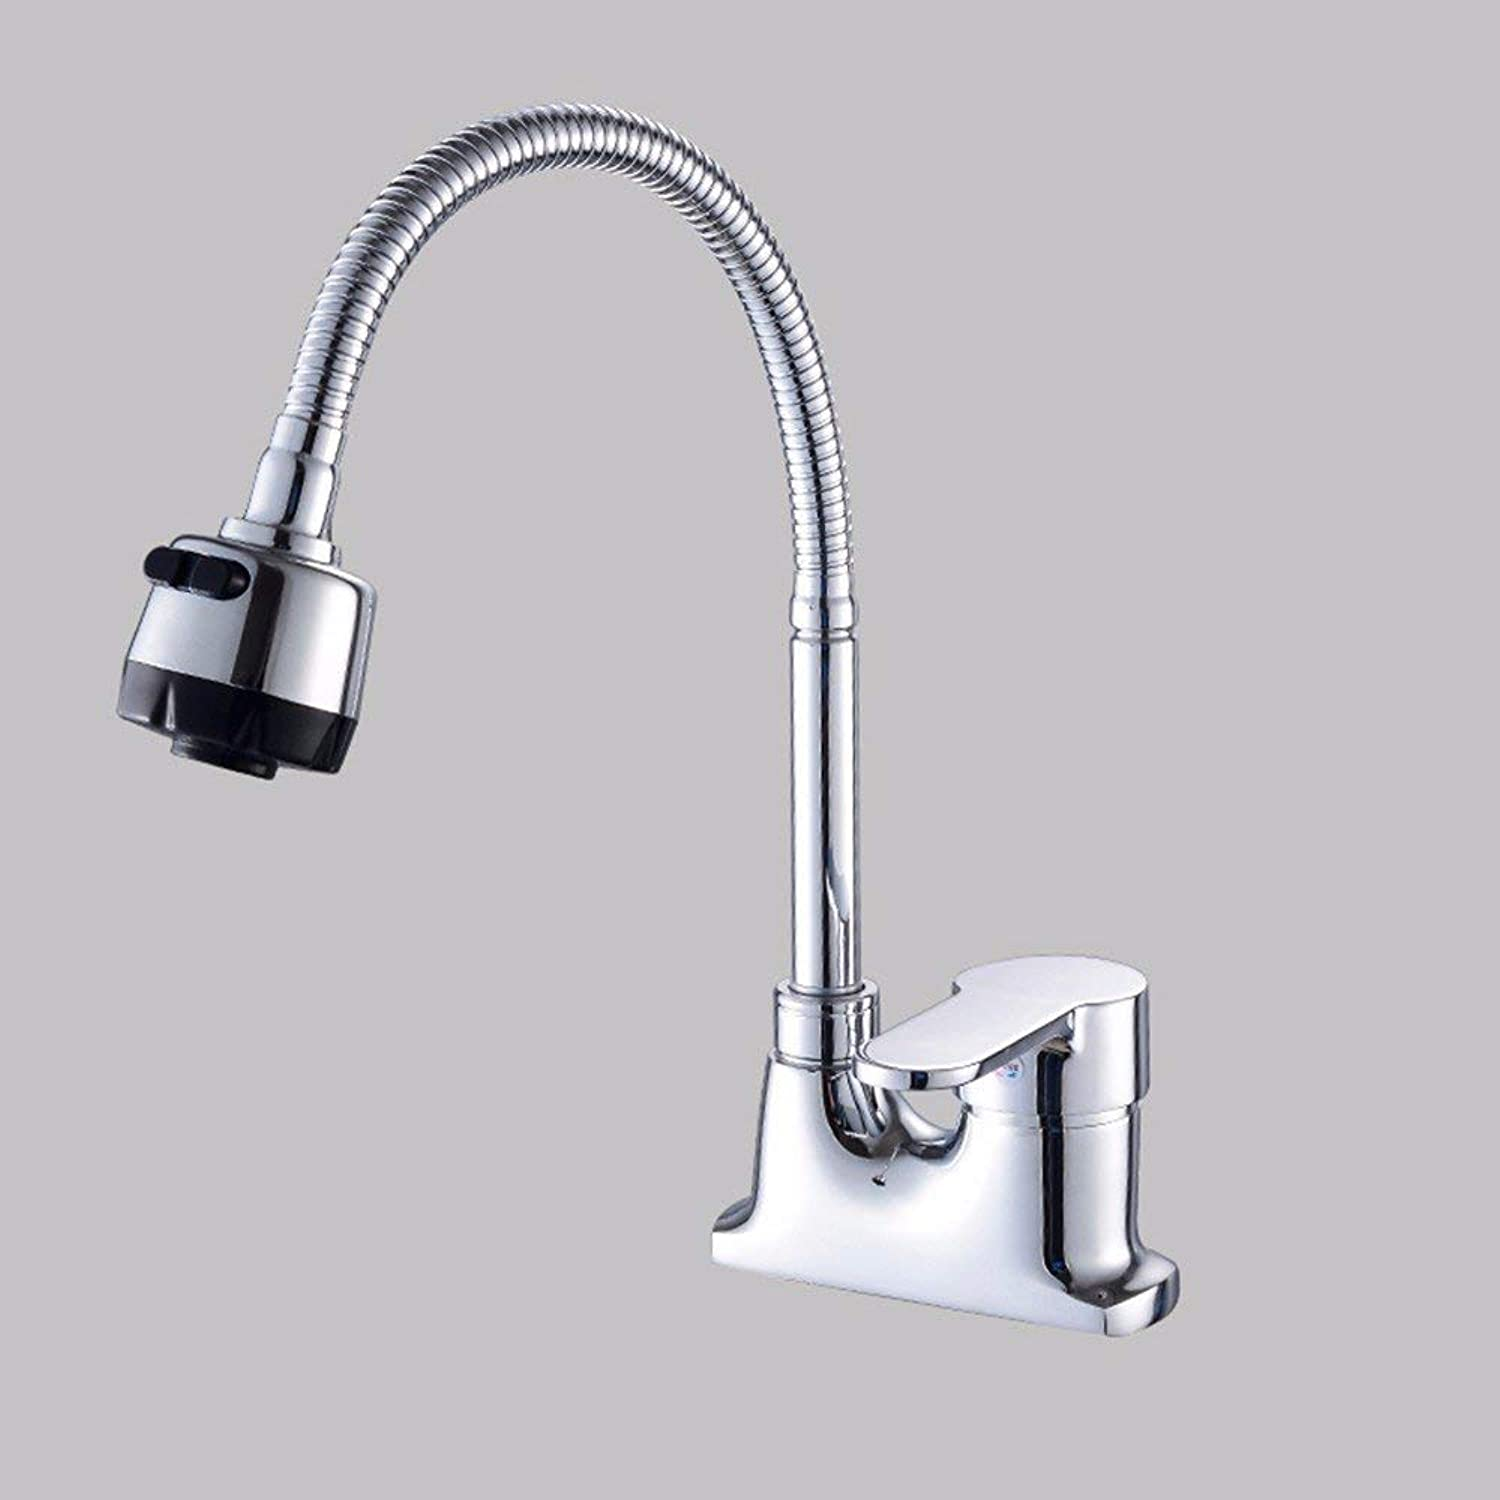 Oudan Basin Mixer Tap Bathroom Sink Faucet Stainless Steel, redation, hot and cold, three hole basin, sink faucet 2 (color   8)